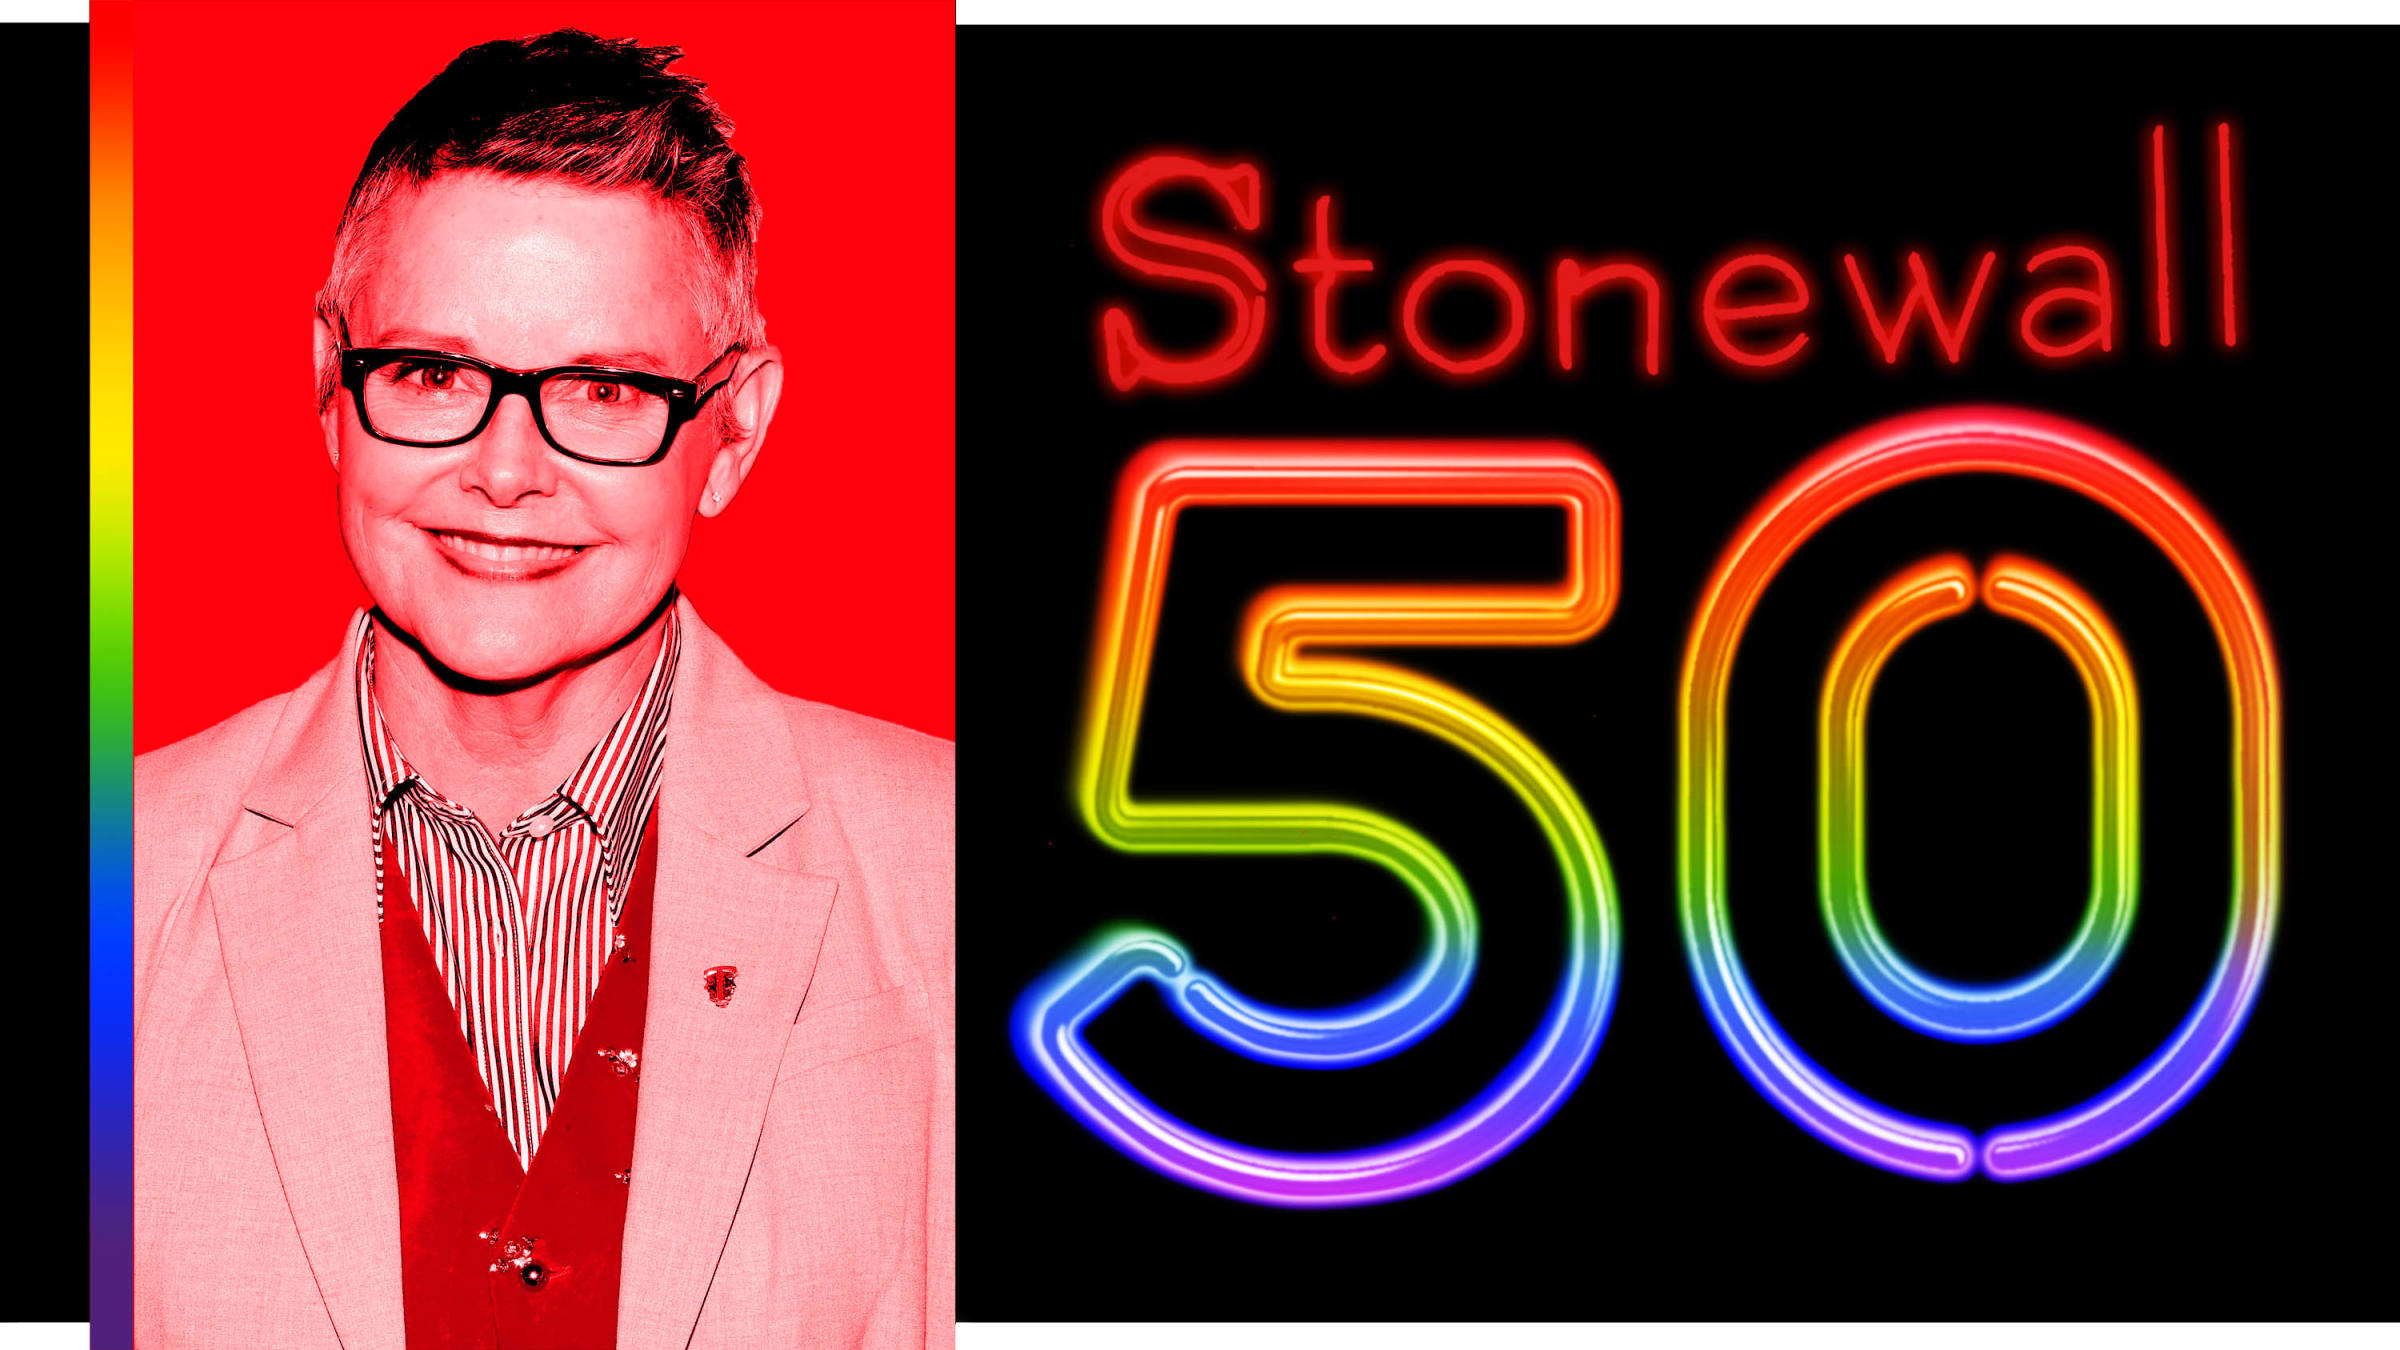 Married... with Children's Amanda Bearse on Stonewall 50: 'We Must Make Room For Everyone ToBe Loved'